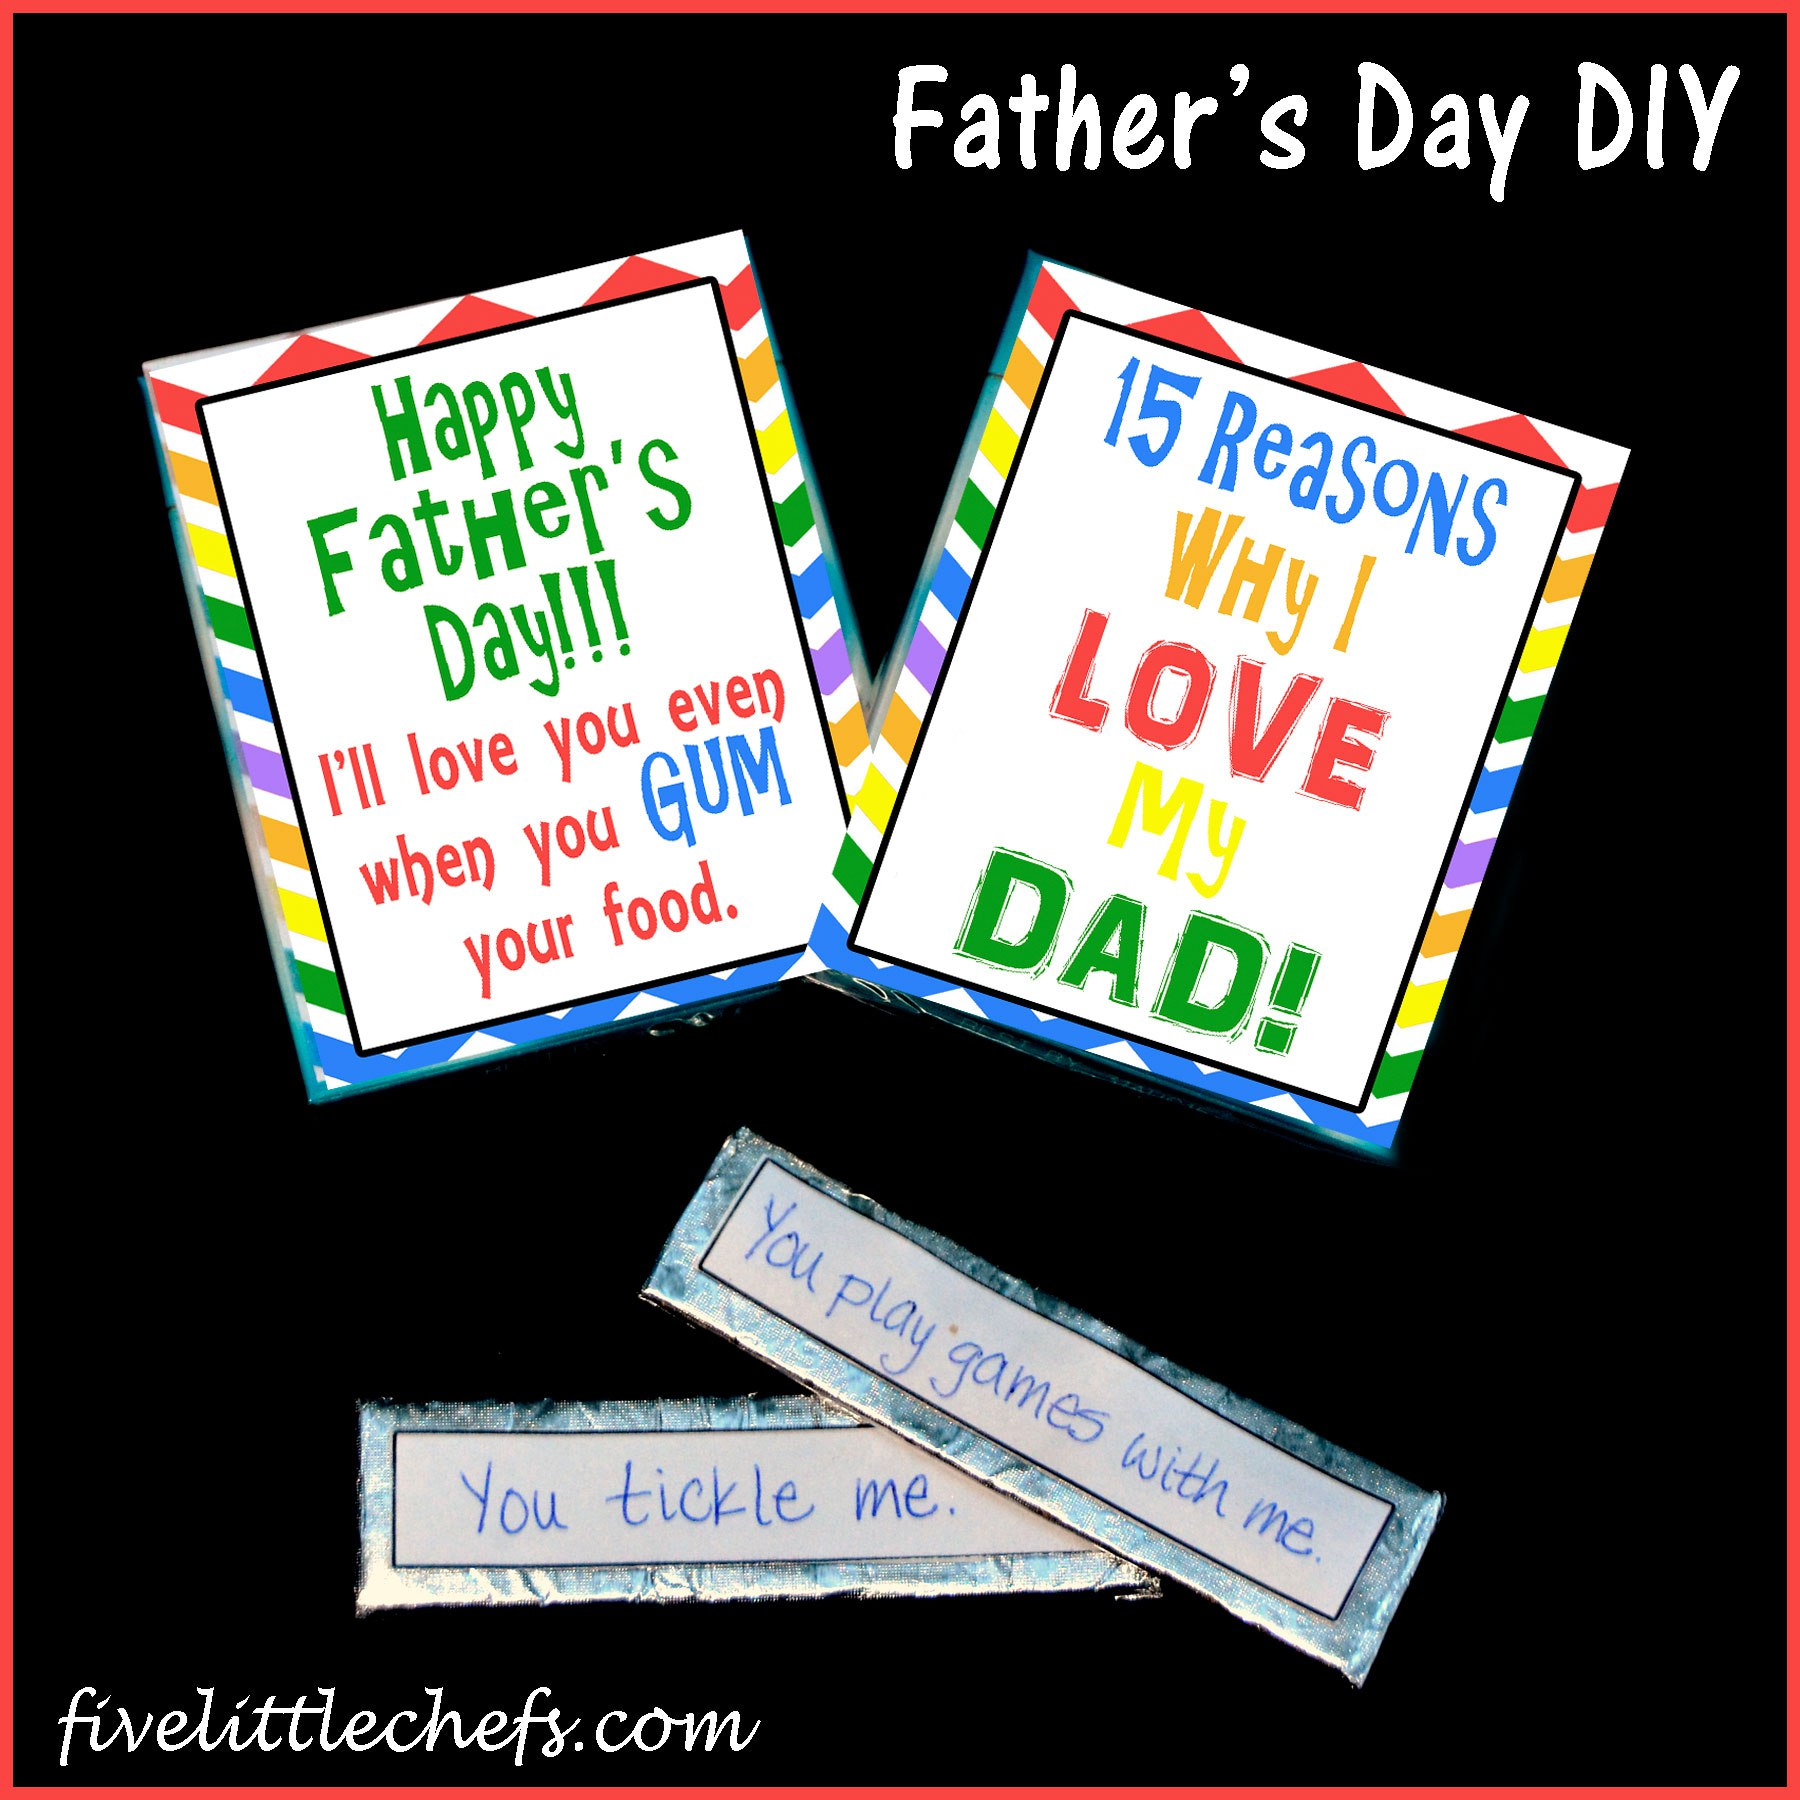 Father's Day Gift Idea from fivelittlechefs.com #fathersday